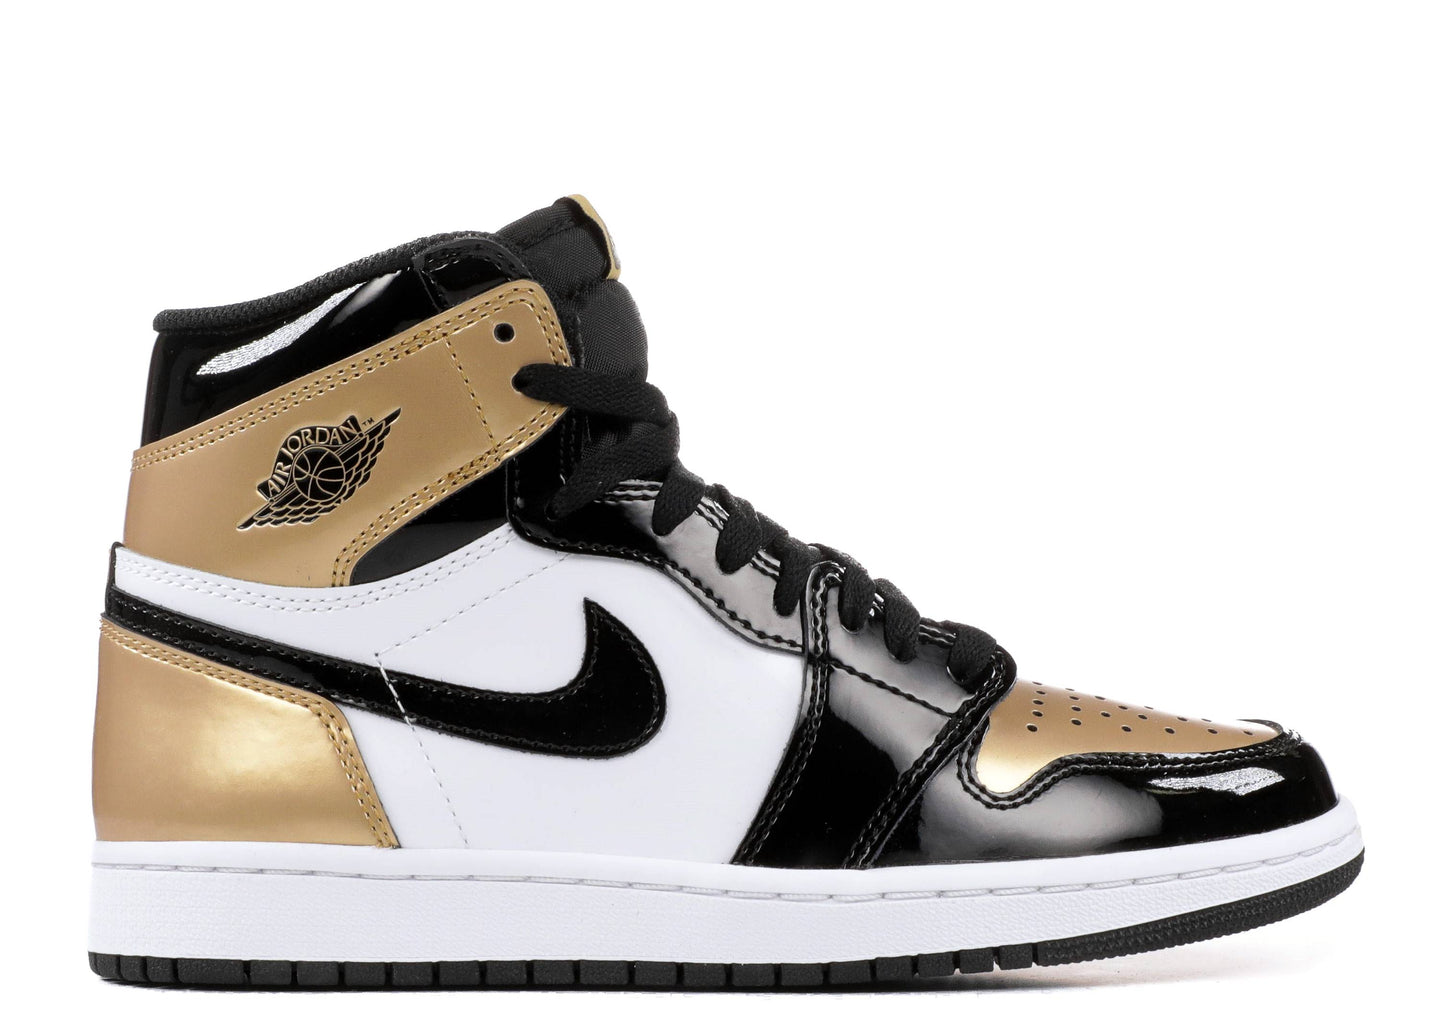 Air Jordan 1 Retro High NRG Gold Toe